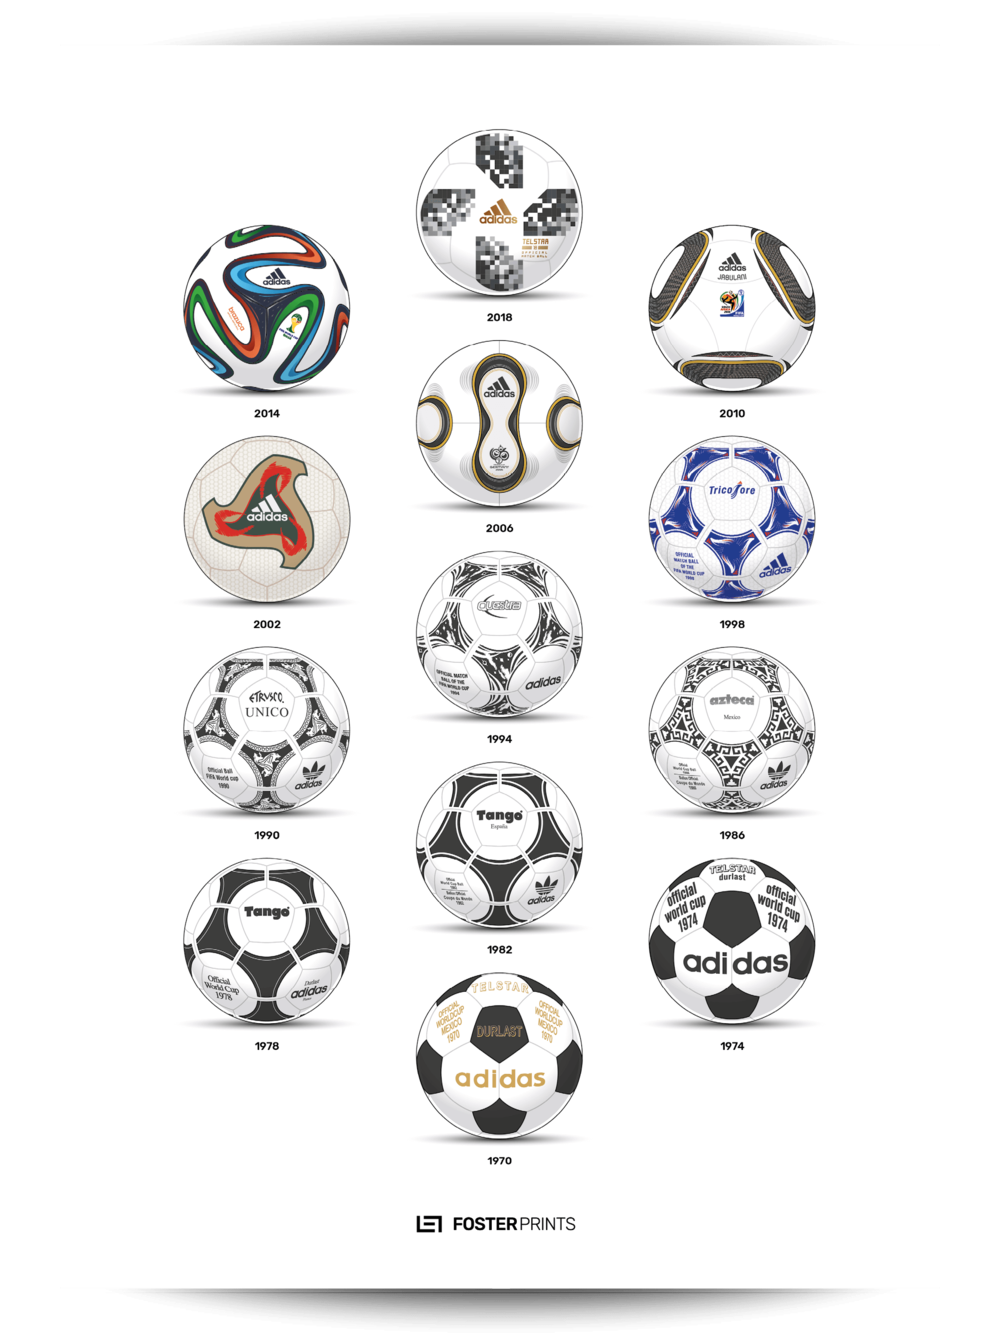 f2c05495ce4 Adidas World Cup Football History Poster — Foster Prints ...